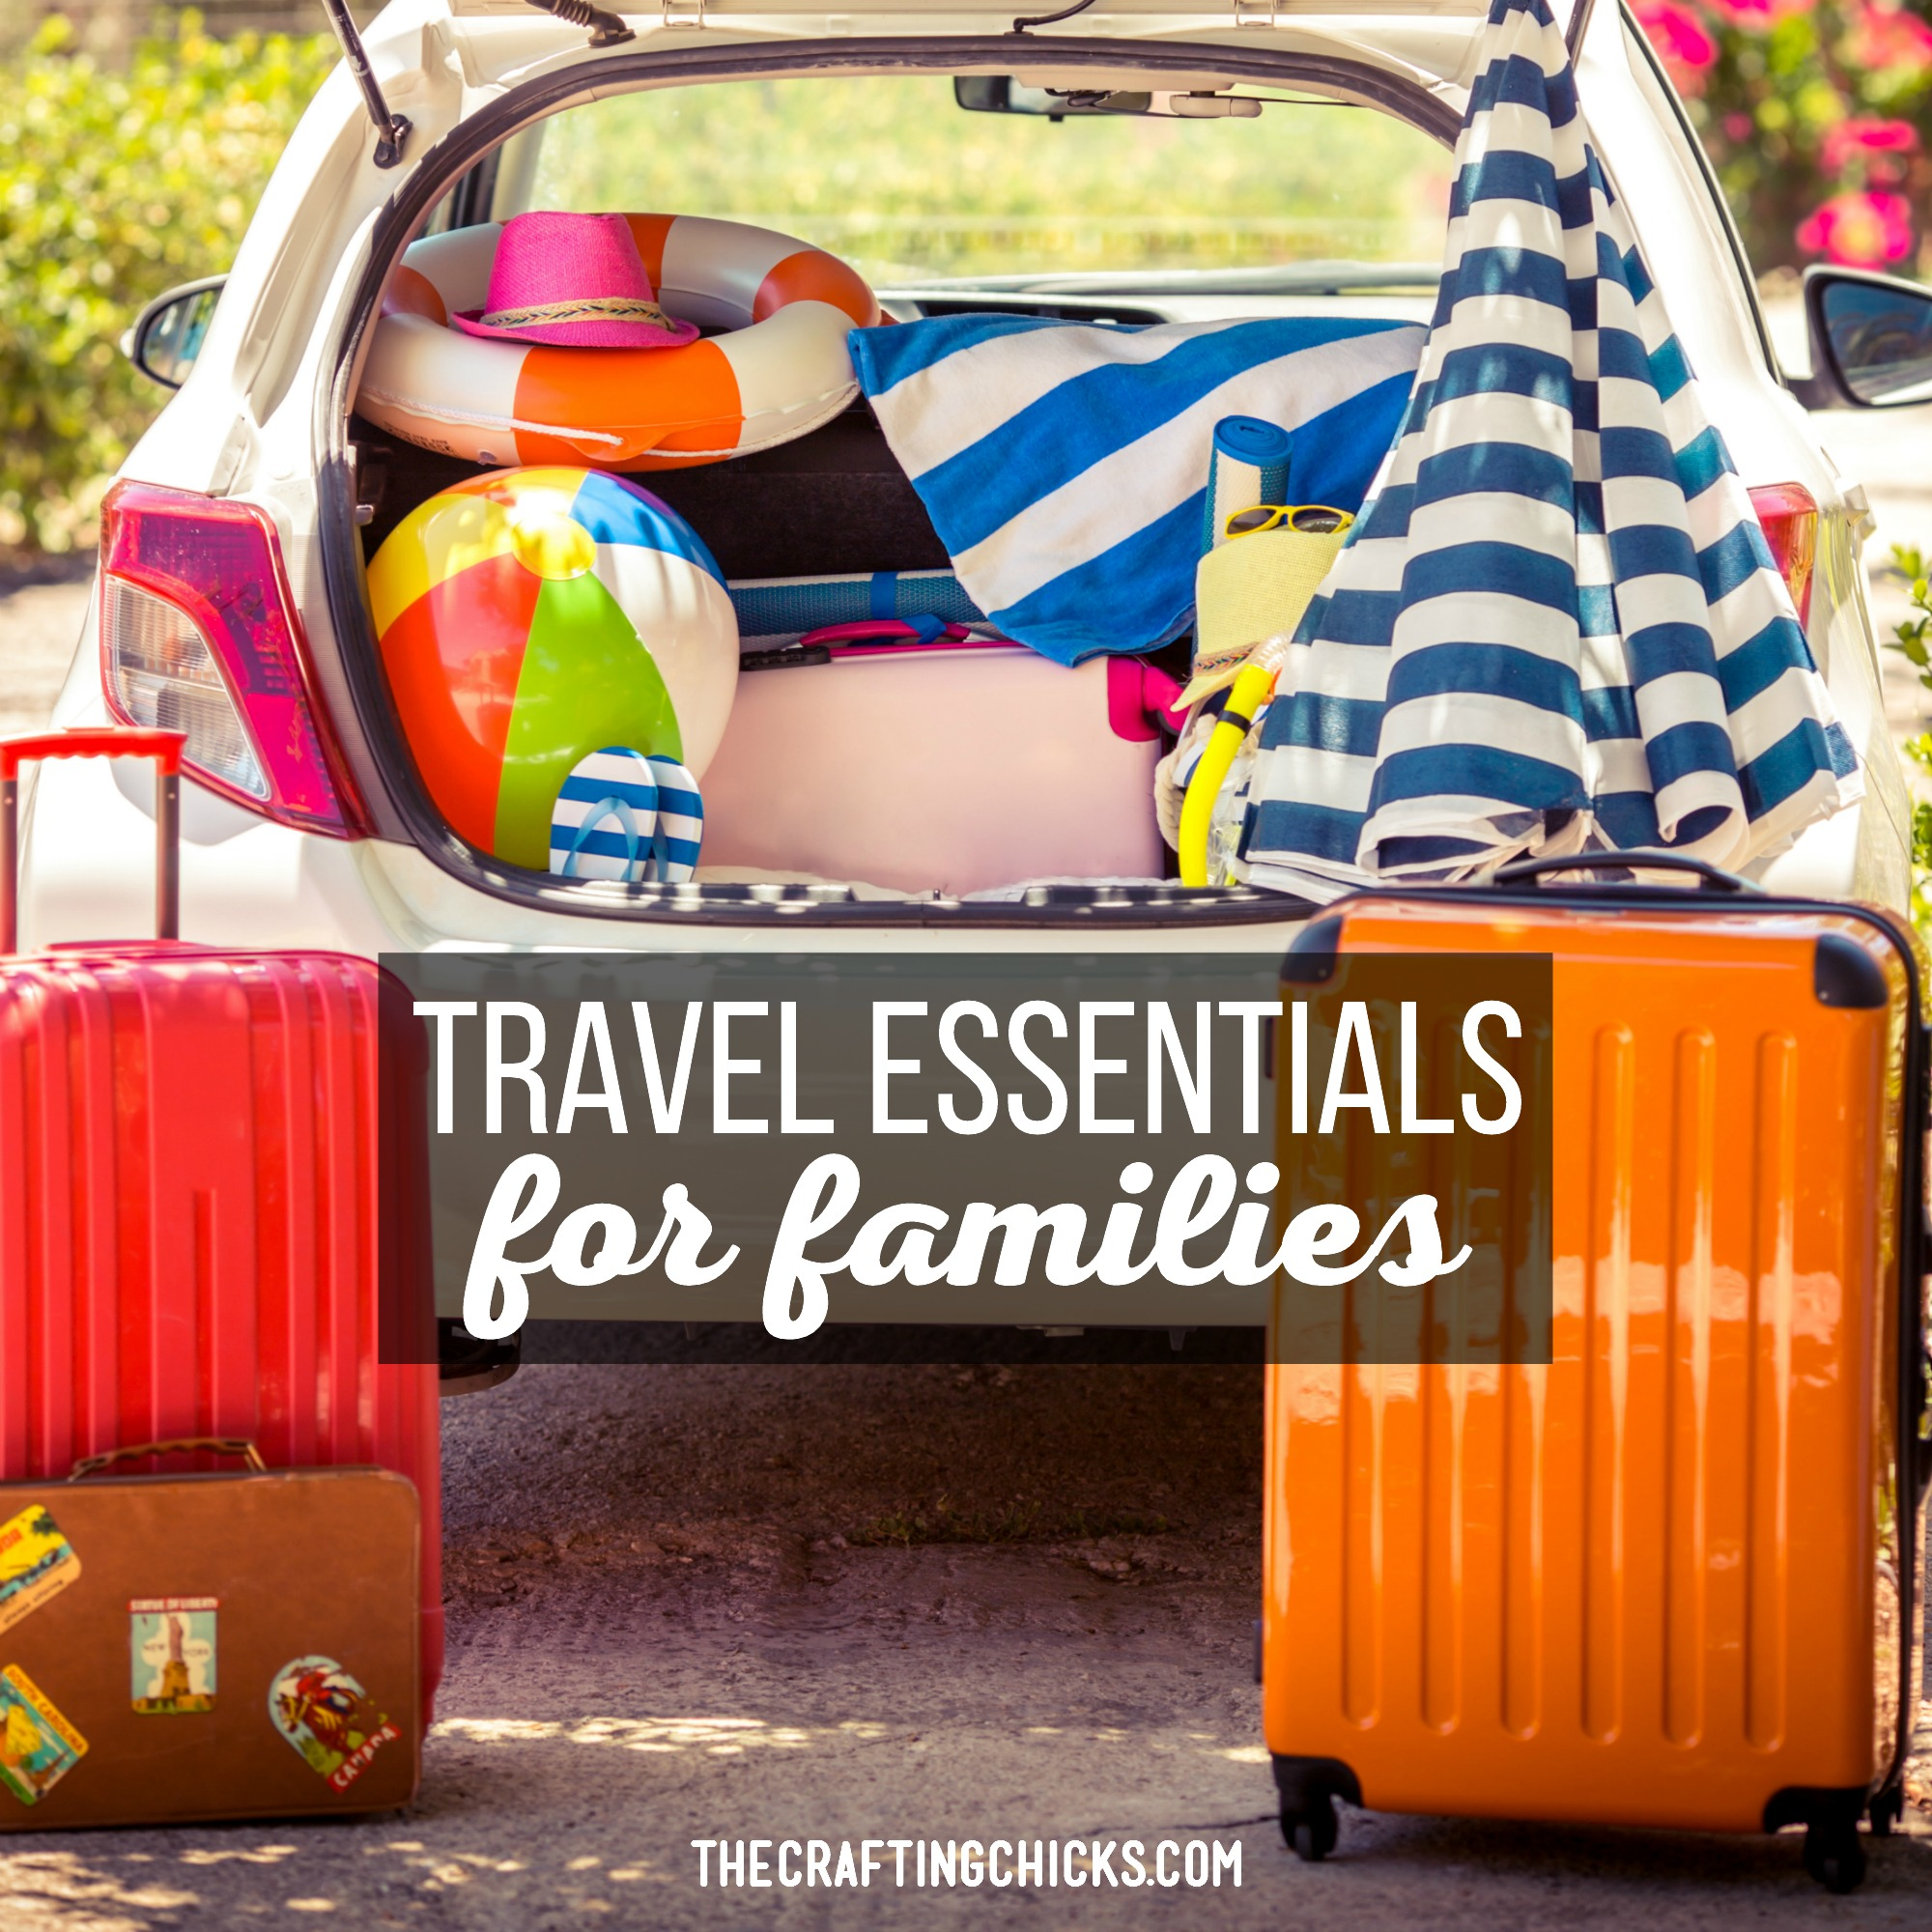 Traveling with family can be an adventure! Let's make it a great one with these travel essentials for families. Everything to make your trip easier.